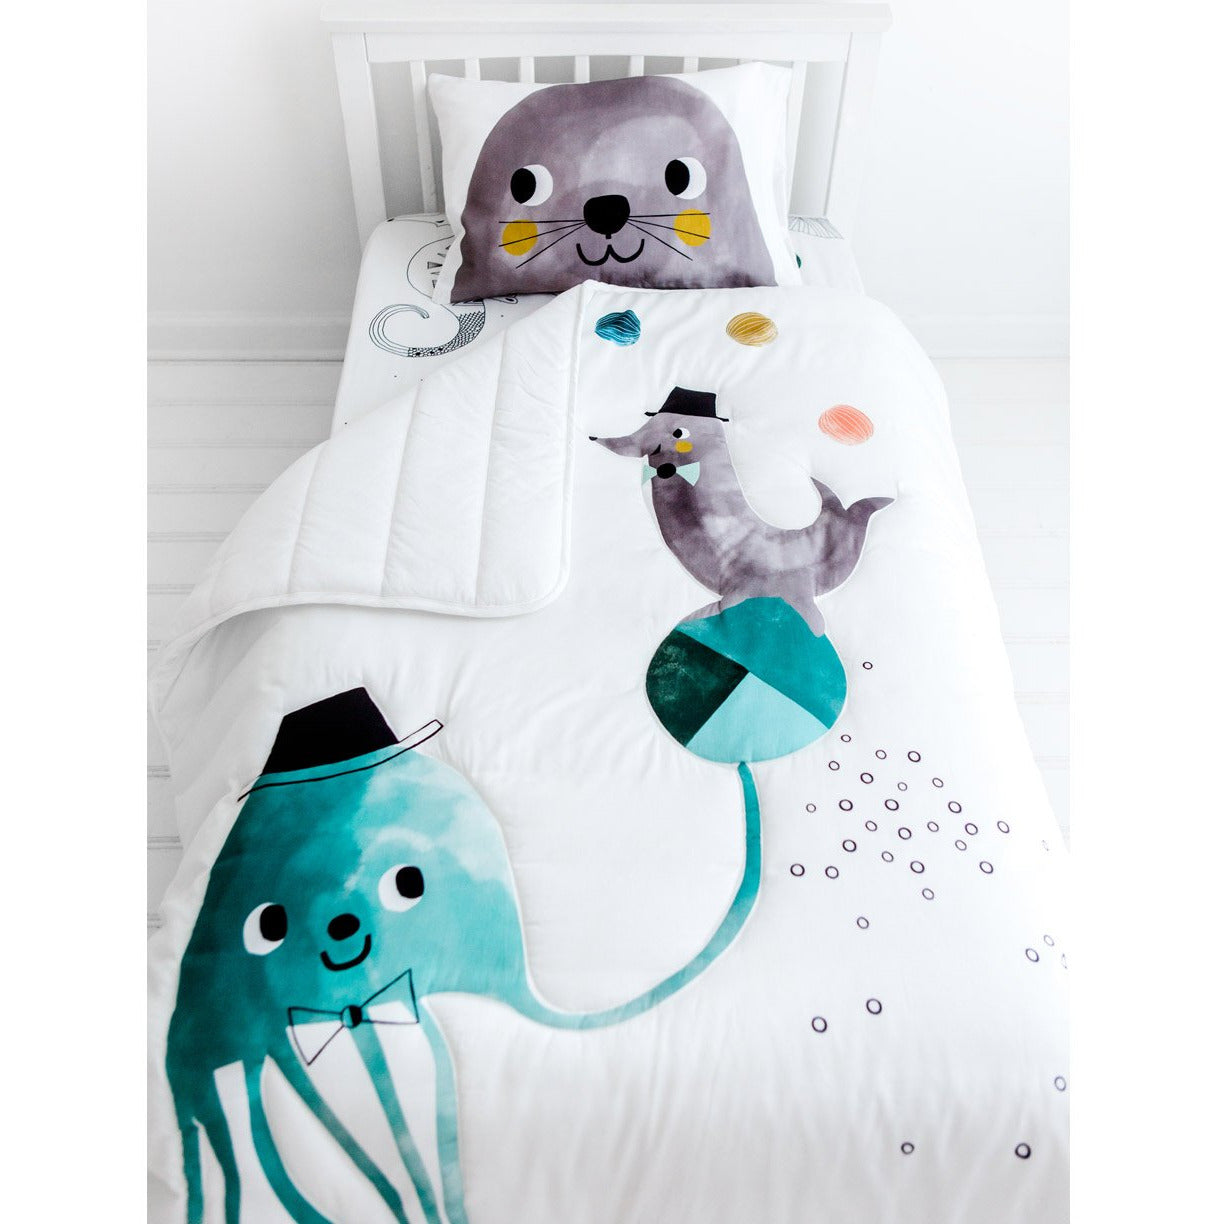 Rookie Humans Jellyfish Toddler Comforter